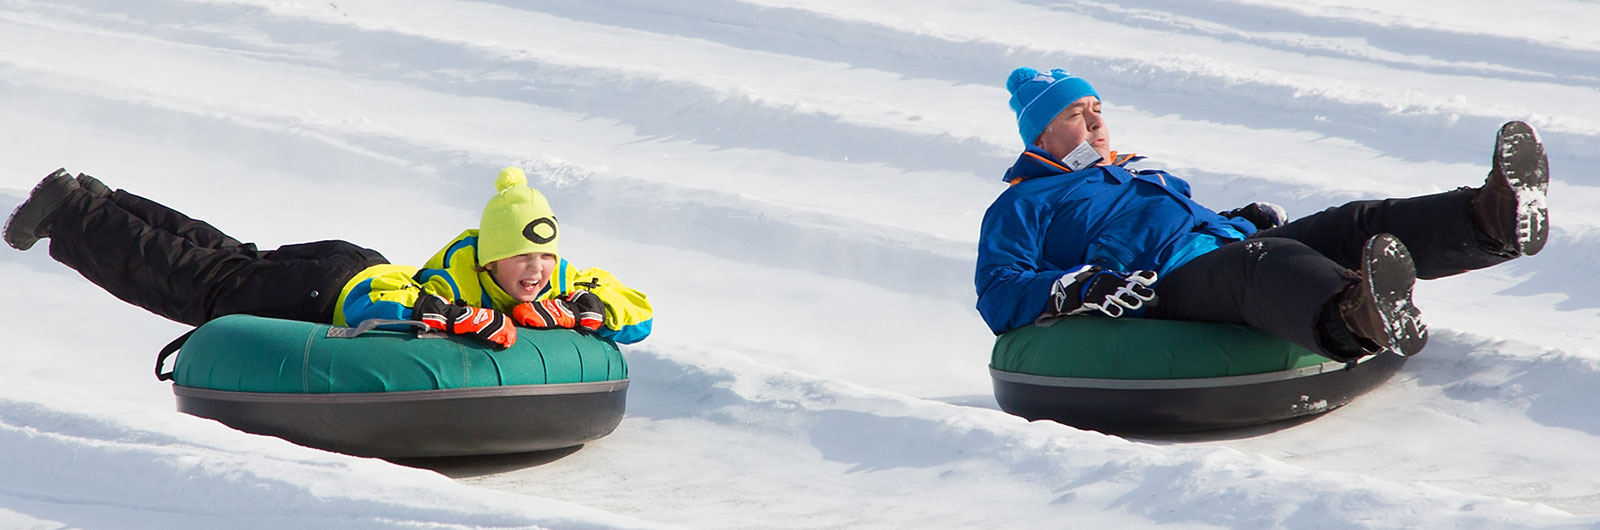 Boy and man snow tubing